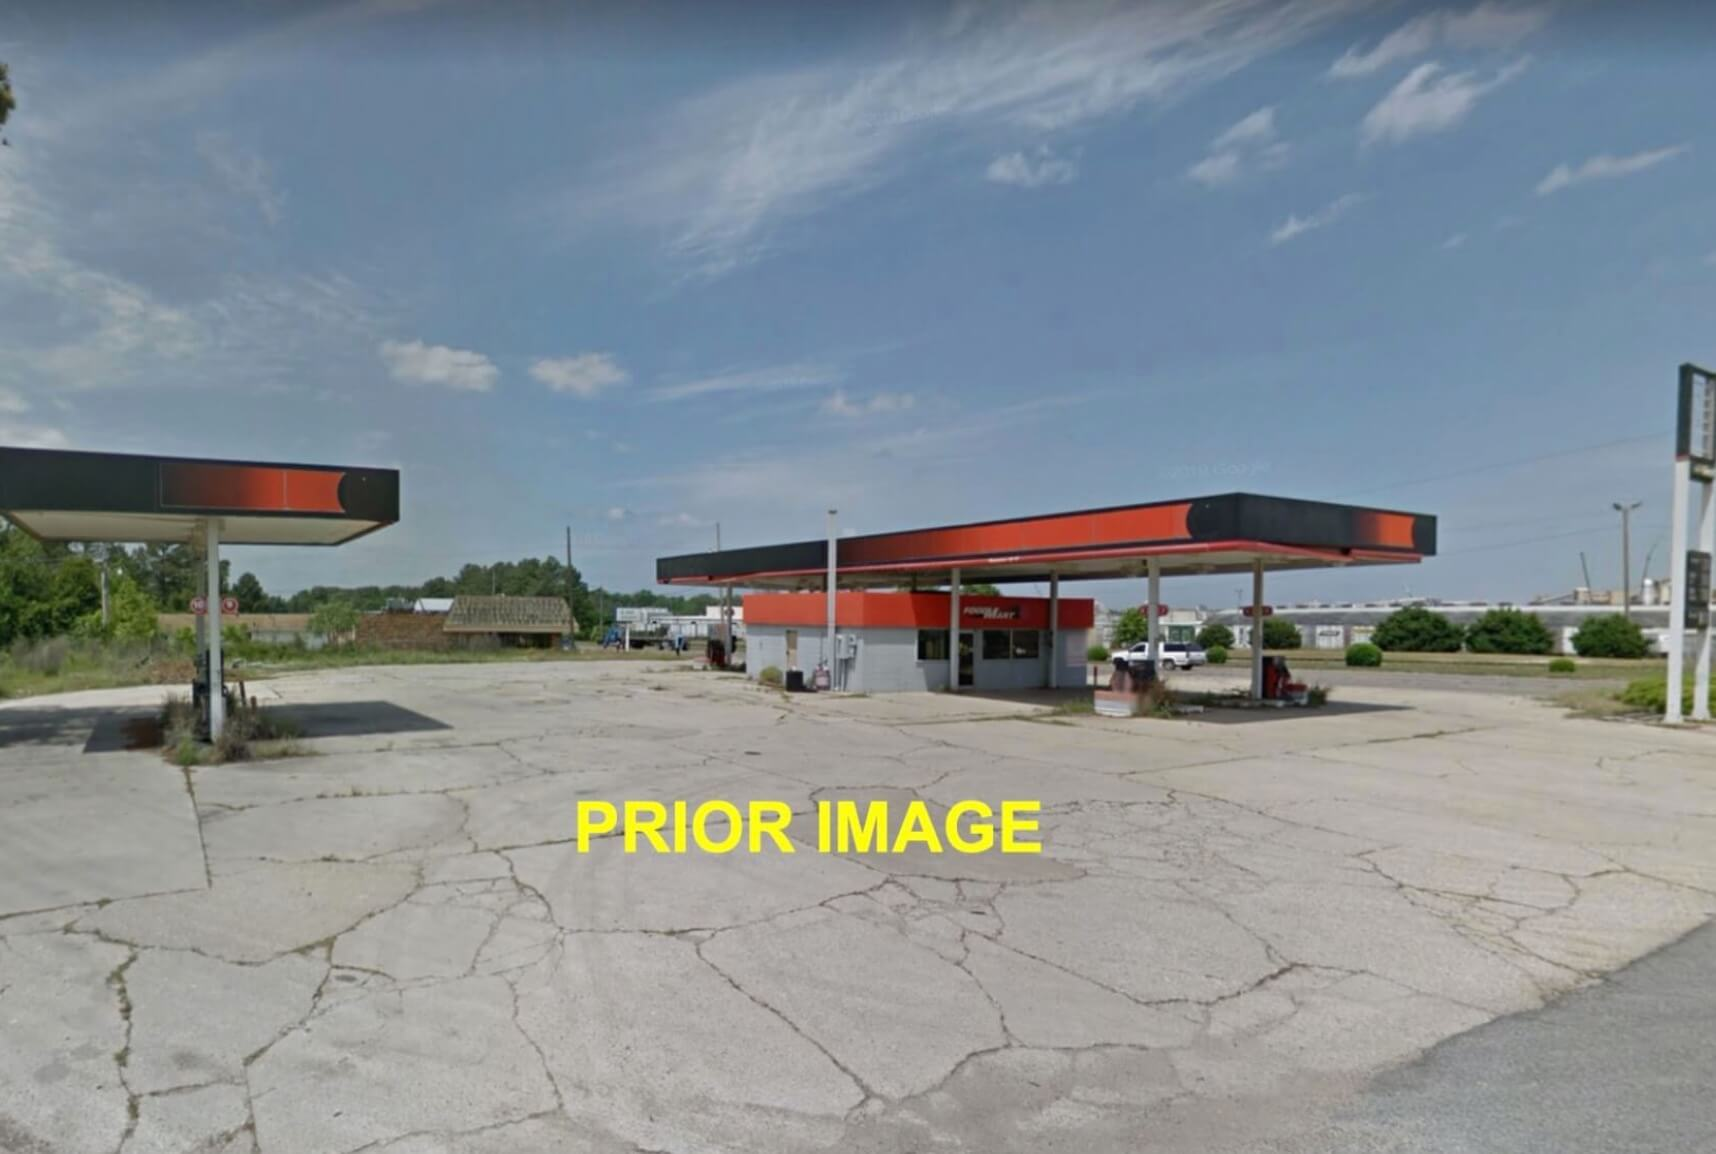 SOLD! Gas Station for Sale by Owner. Purchase a Gas Station for Sale by Owner